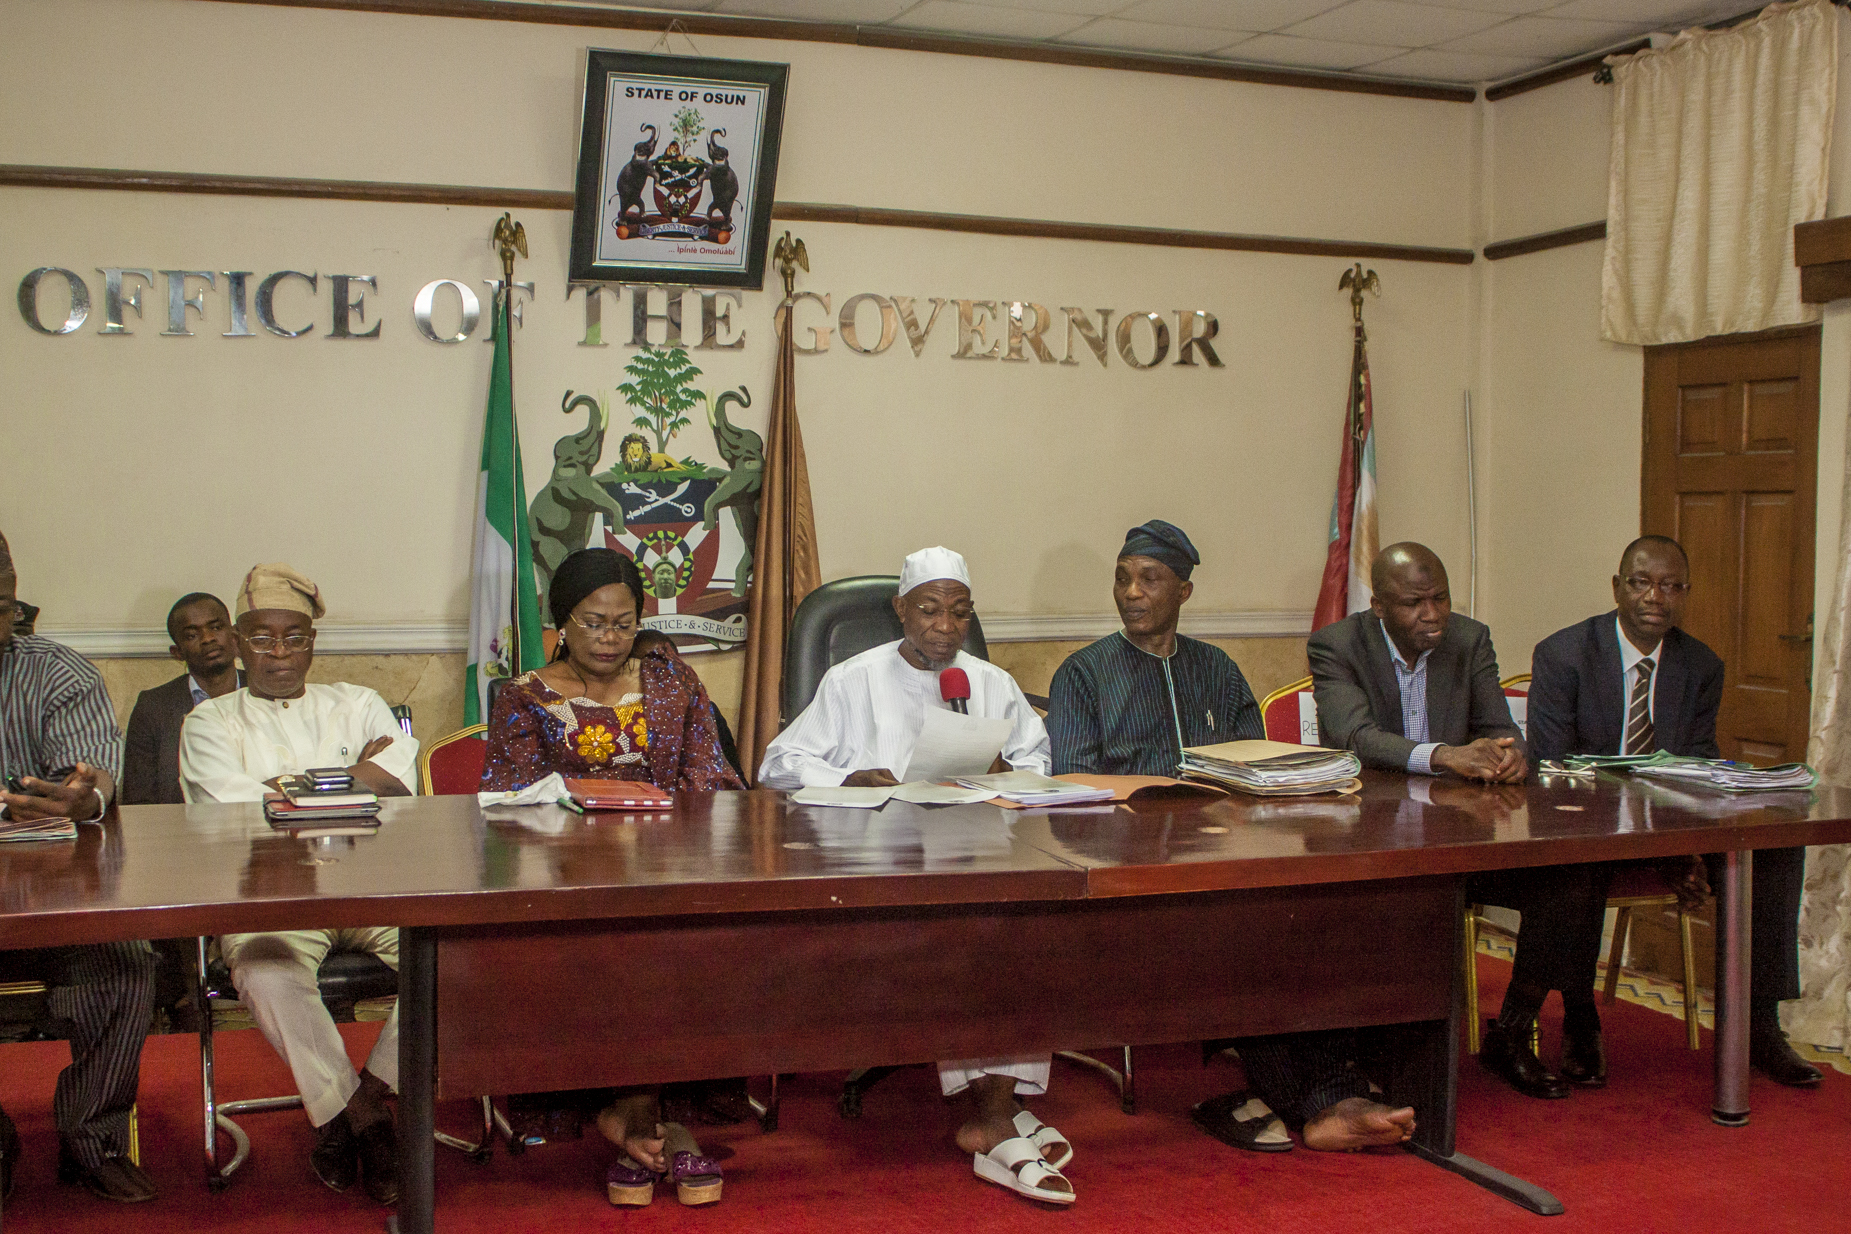 Ogbeni Rauf Aregbesola while addressing the gathering at the presentation